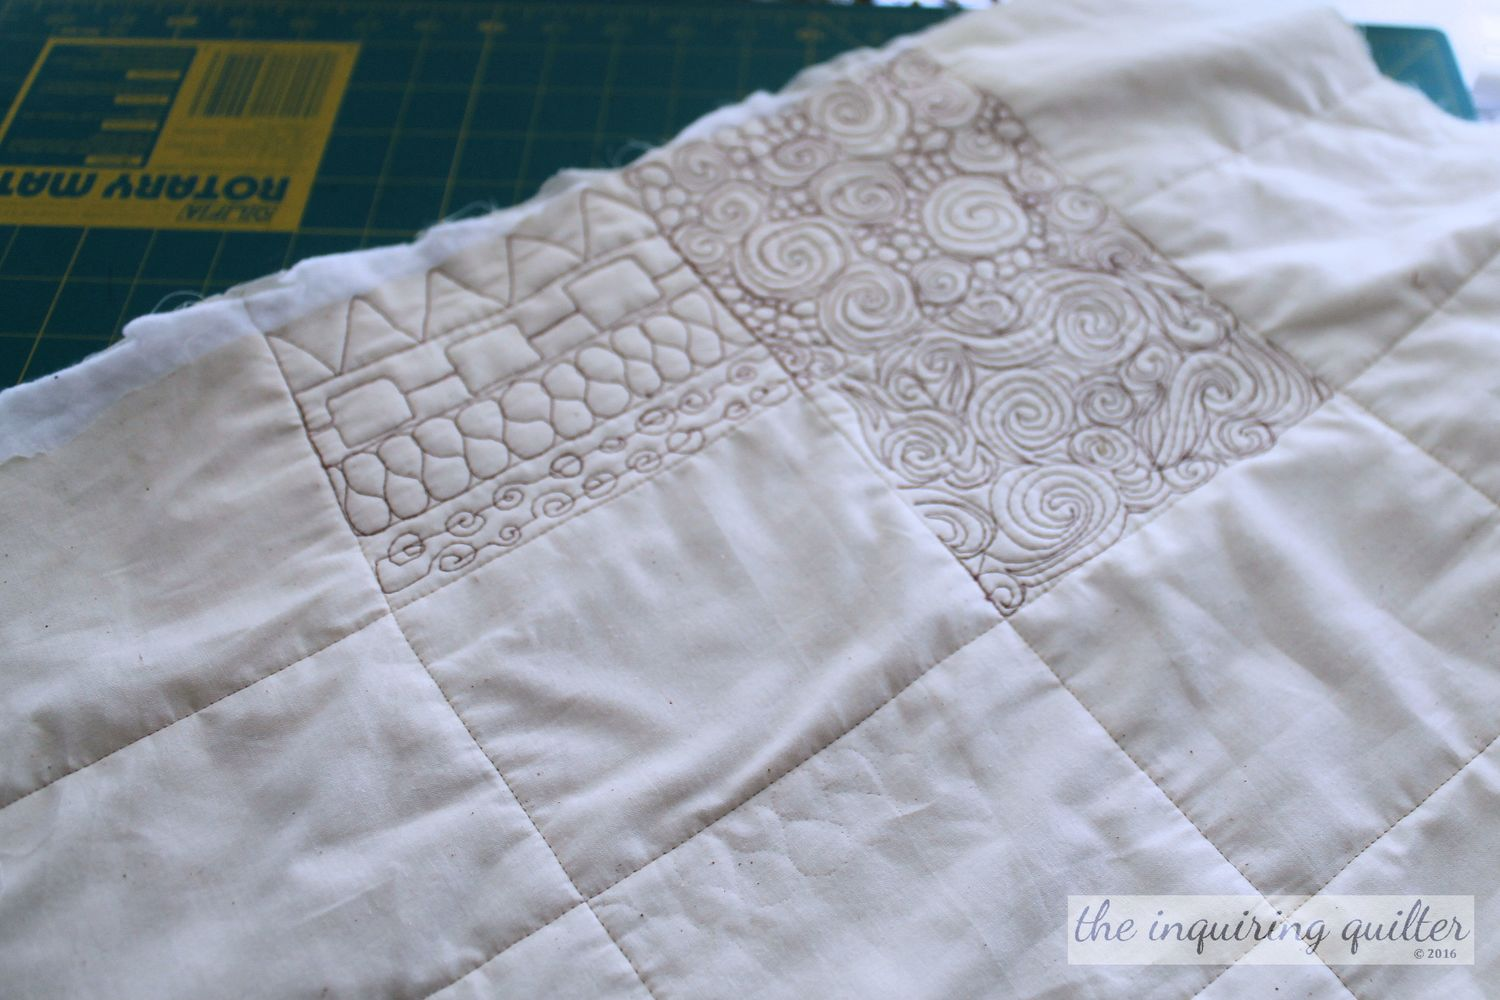 Being Brave About Quilting: The Results — The Inquiring Quilter